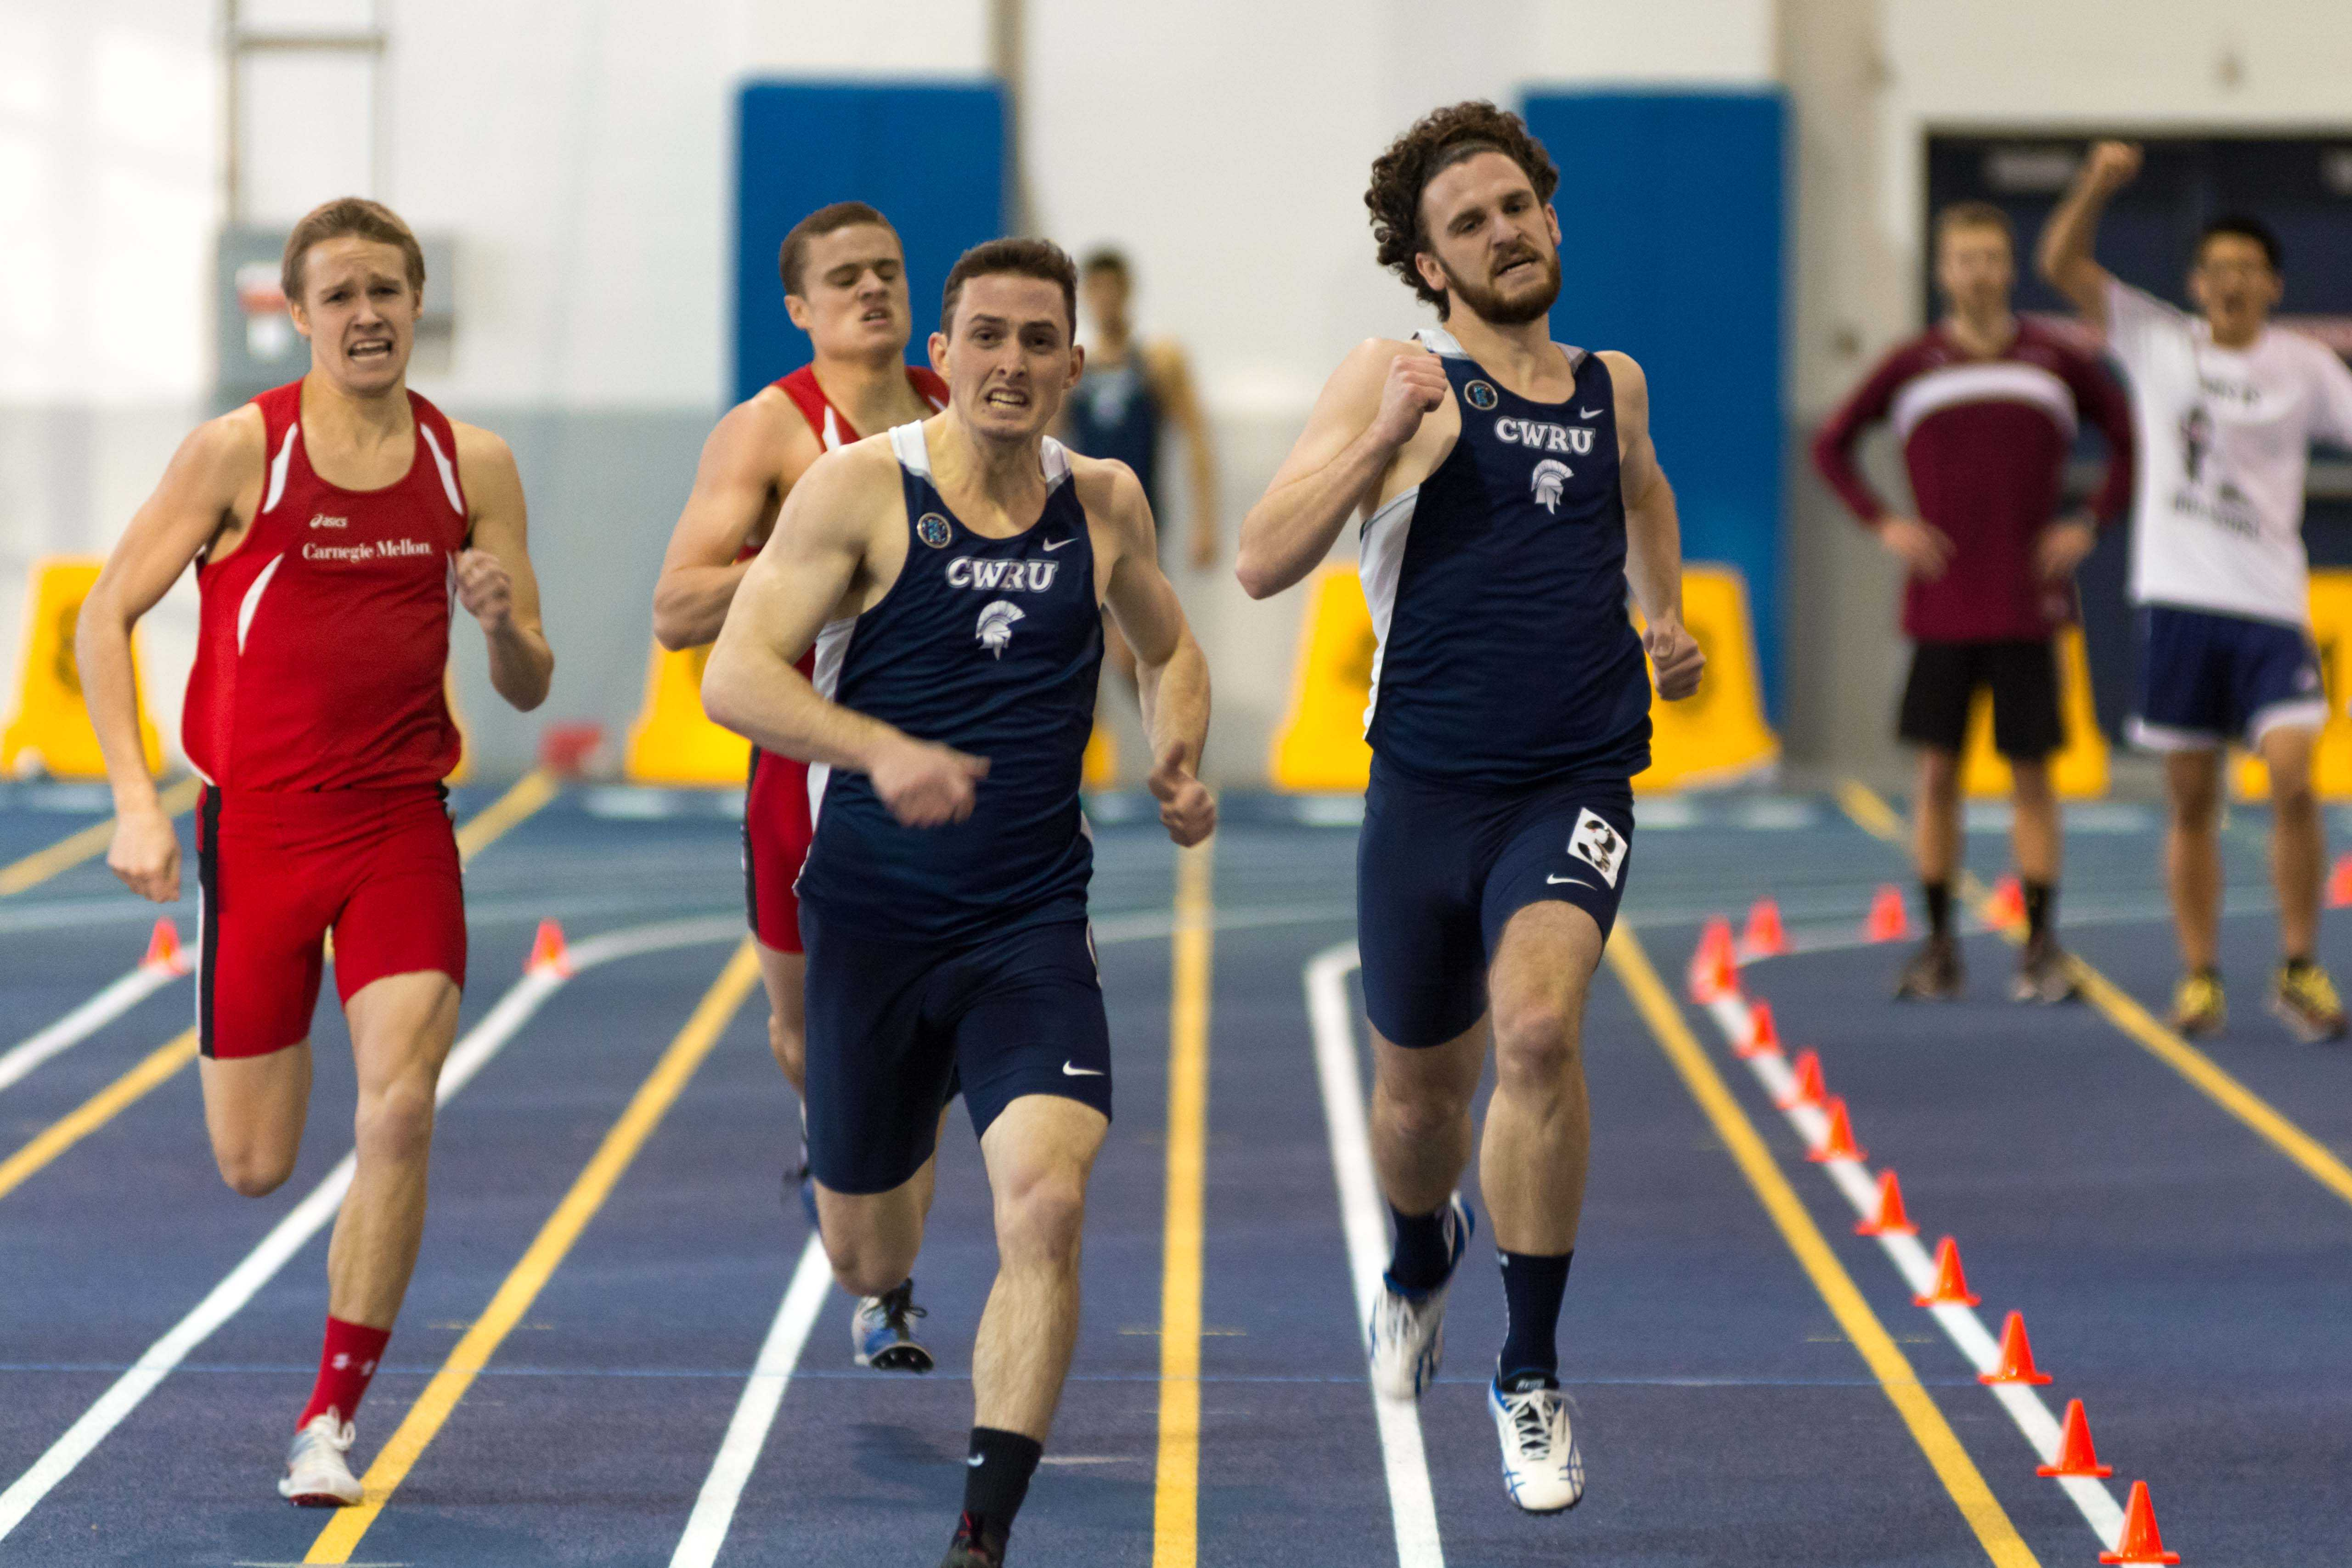 The Spartans sprint for first in Veale against archrival Carnegie Mellon.